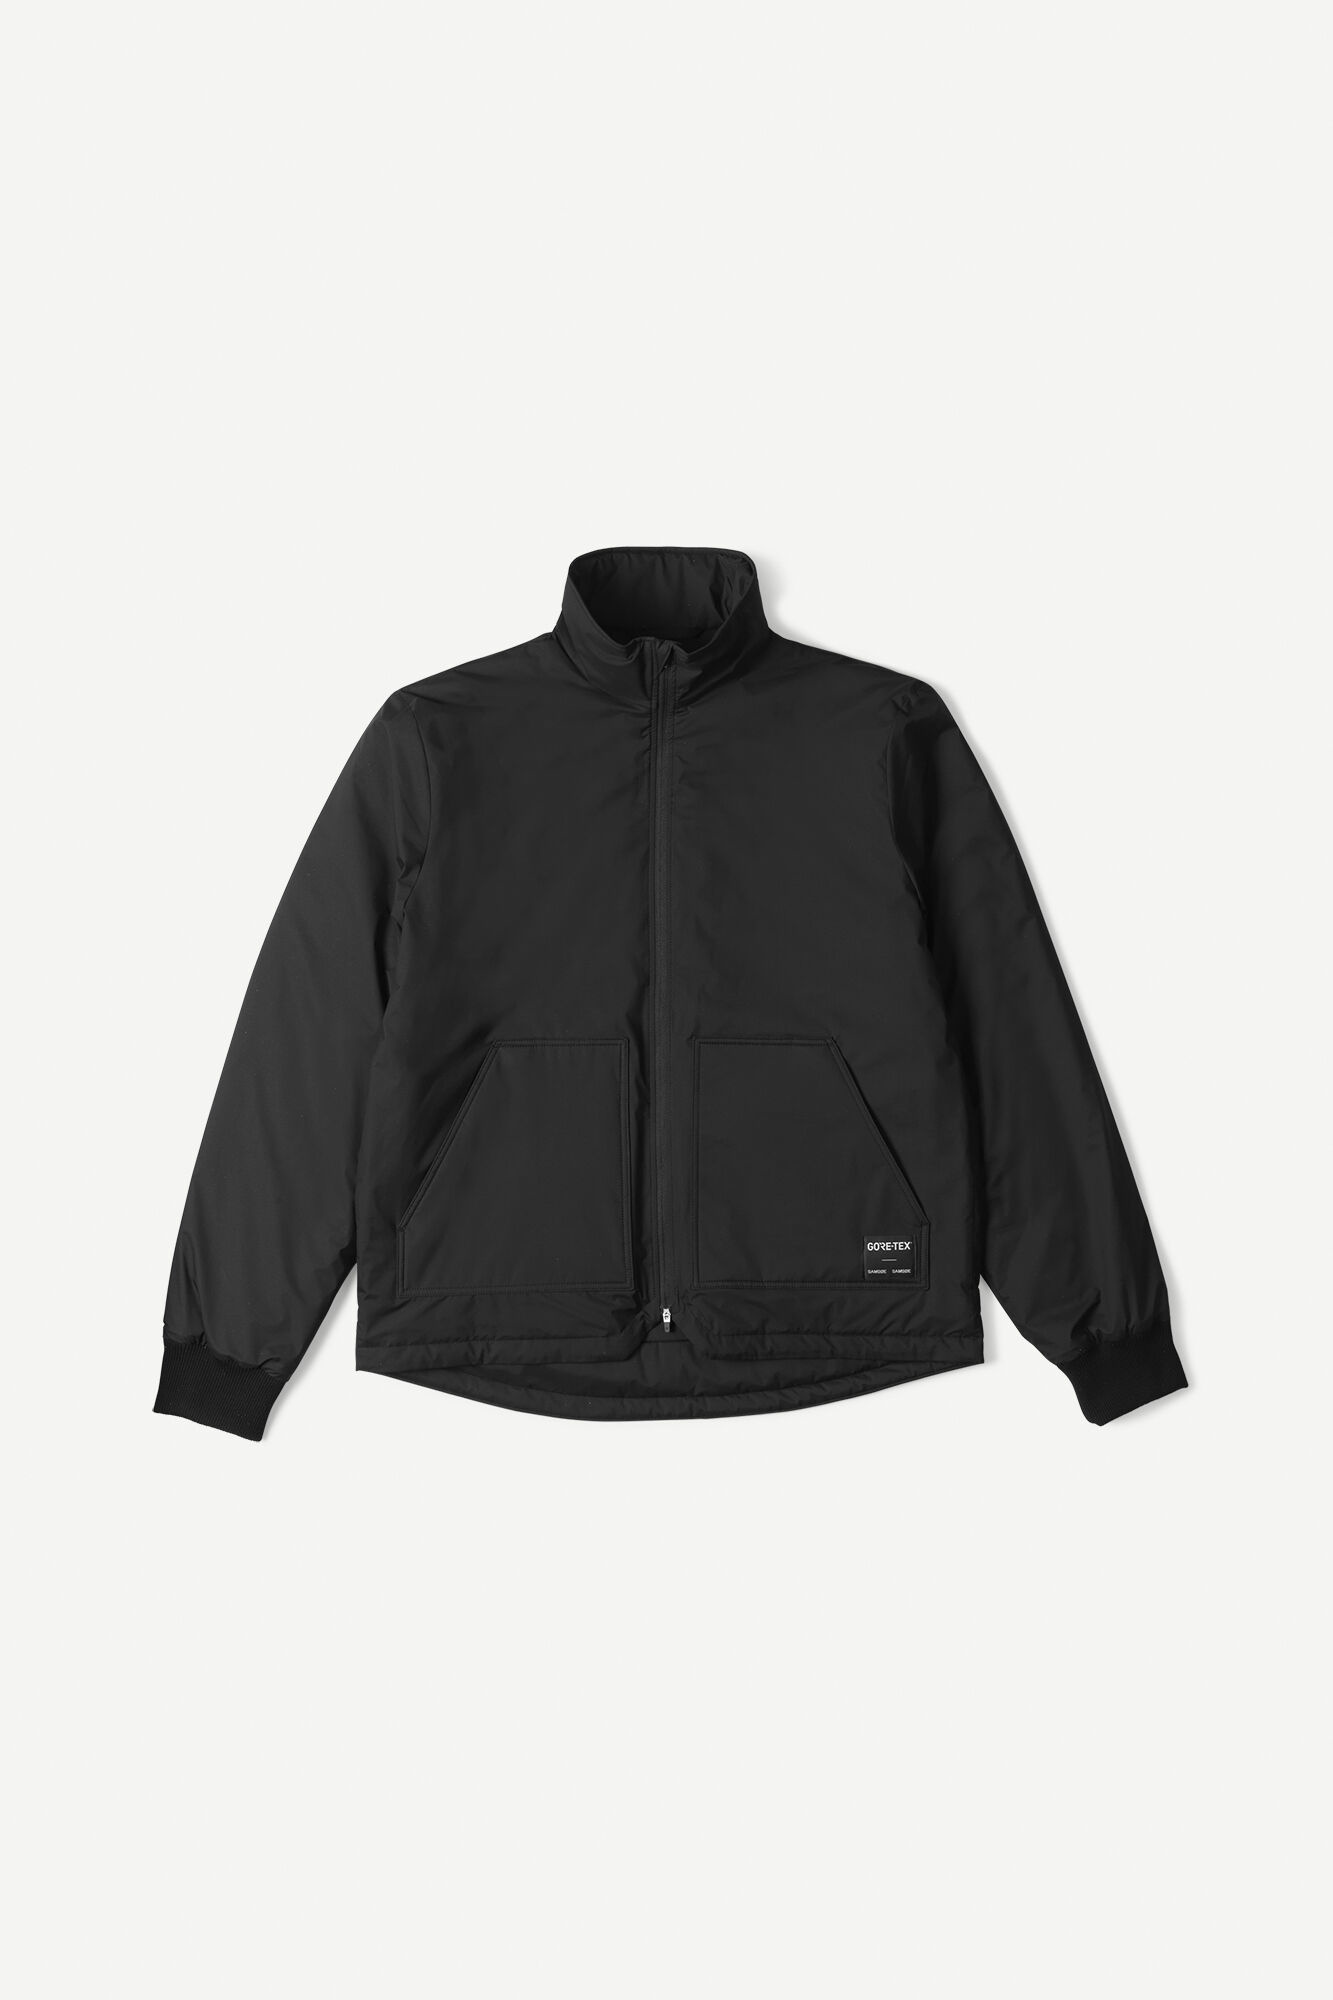 Thes Jacket Black 11684-1